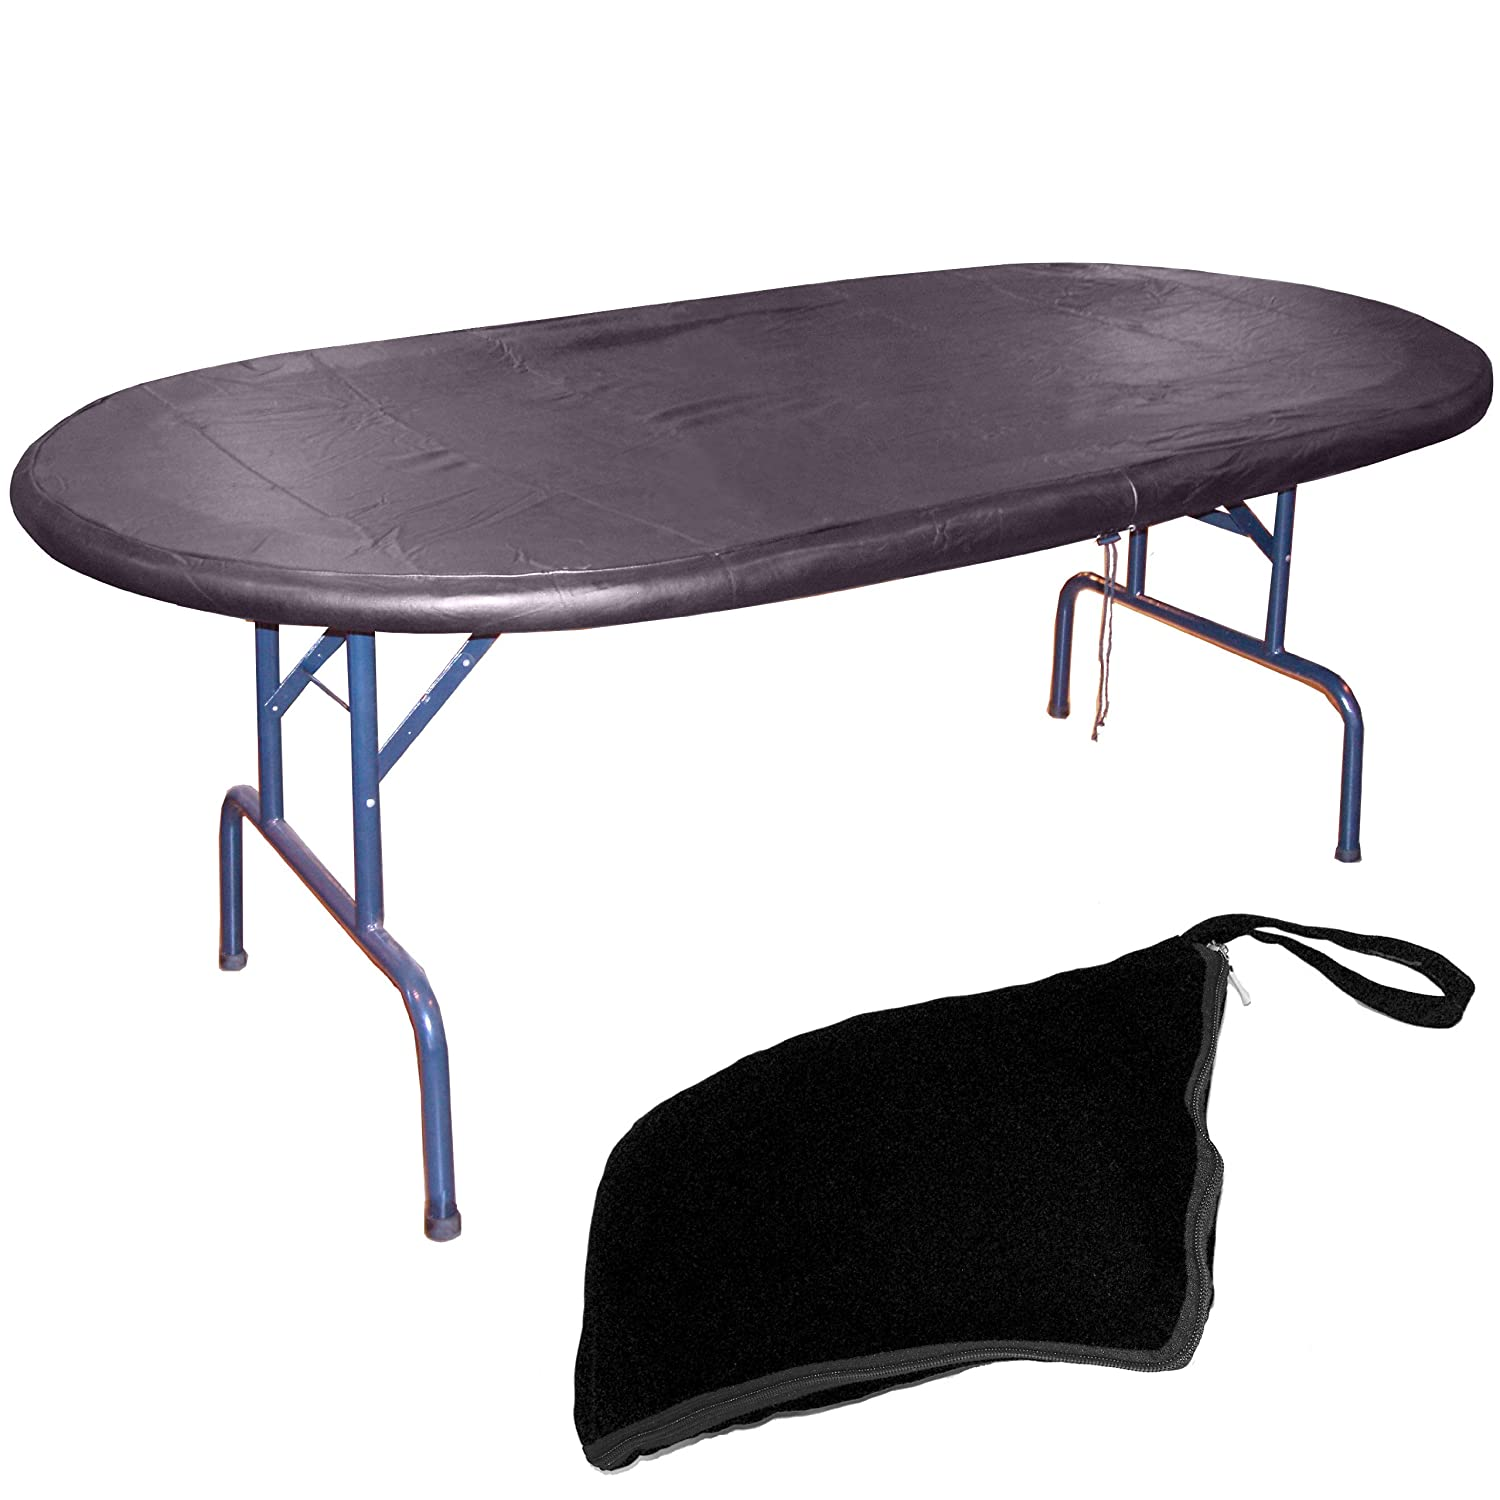 Lovely Amazon.com : Trademark 84 X 44 Holdu0027em Poker Table Cover (Black) : Poker  Table Top : Sports U0026 Outdoors